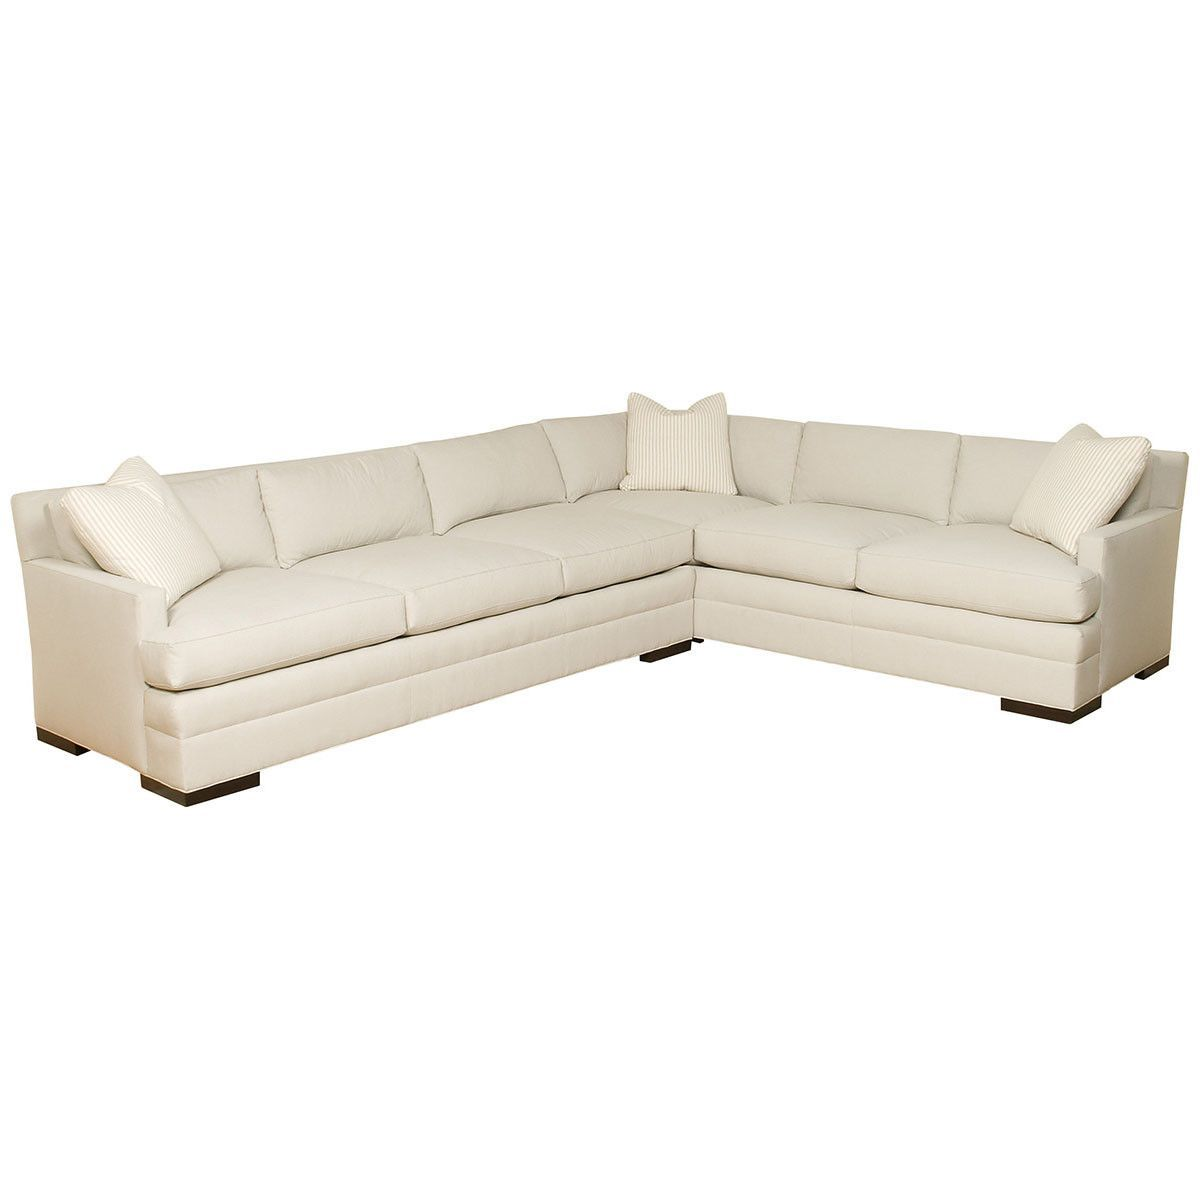 Vanguard Furniture Newberry Park Left Arm Sofa 608-LAS